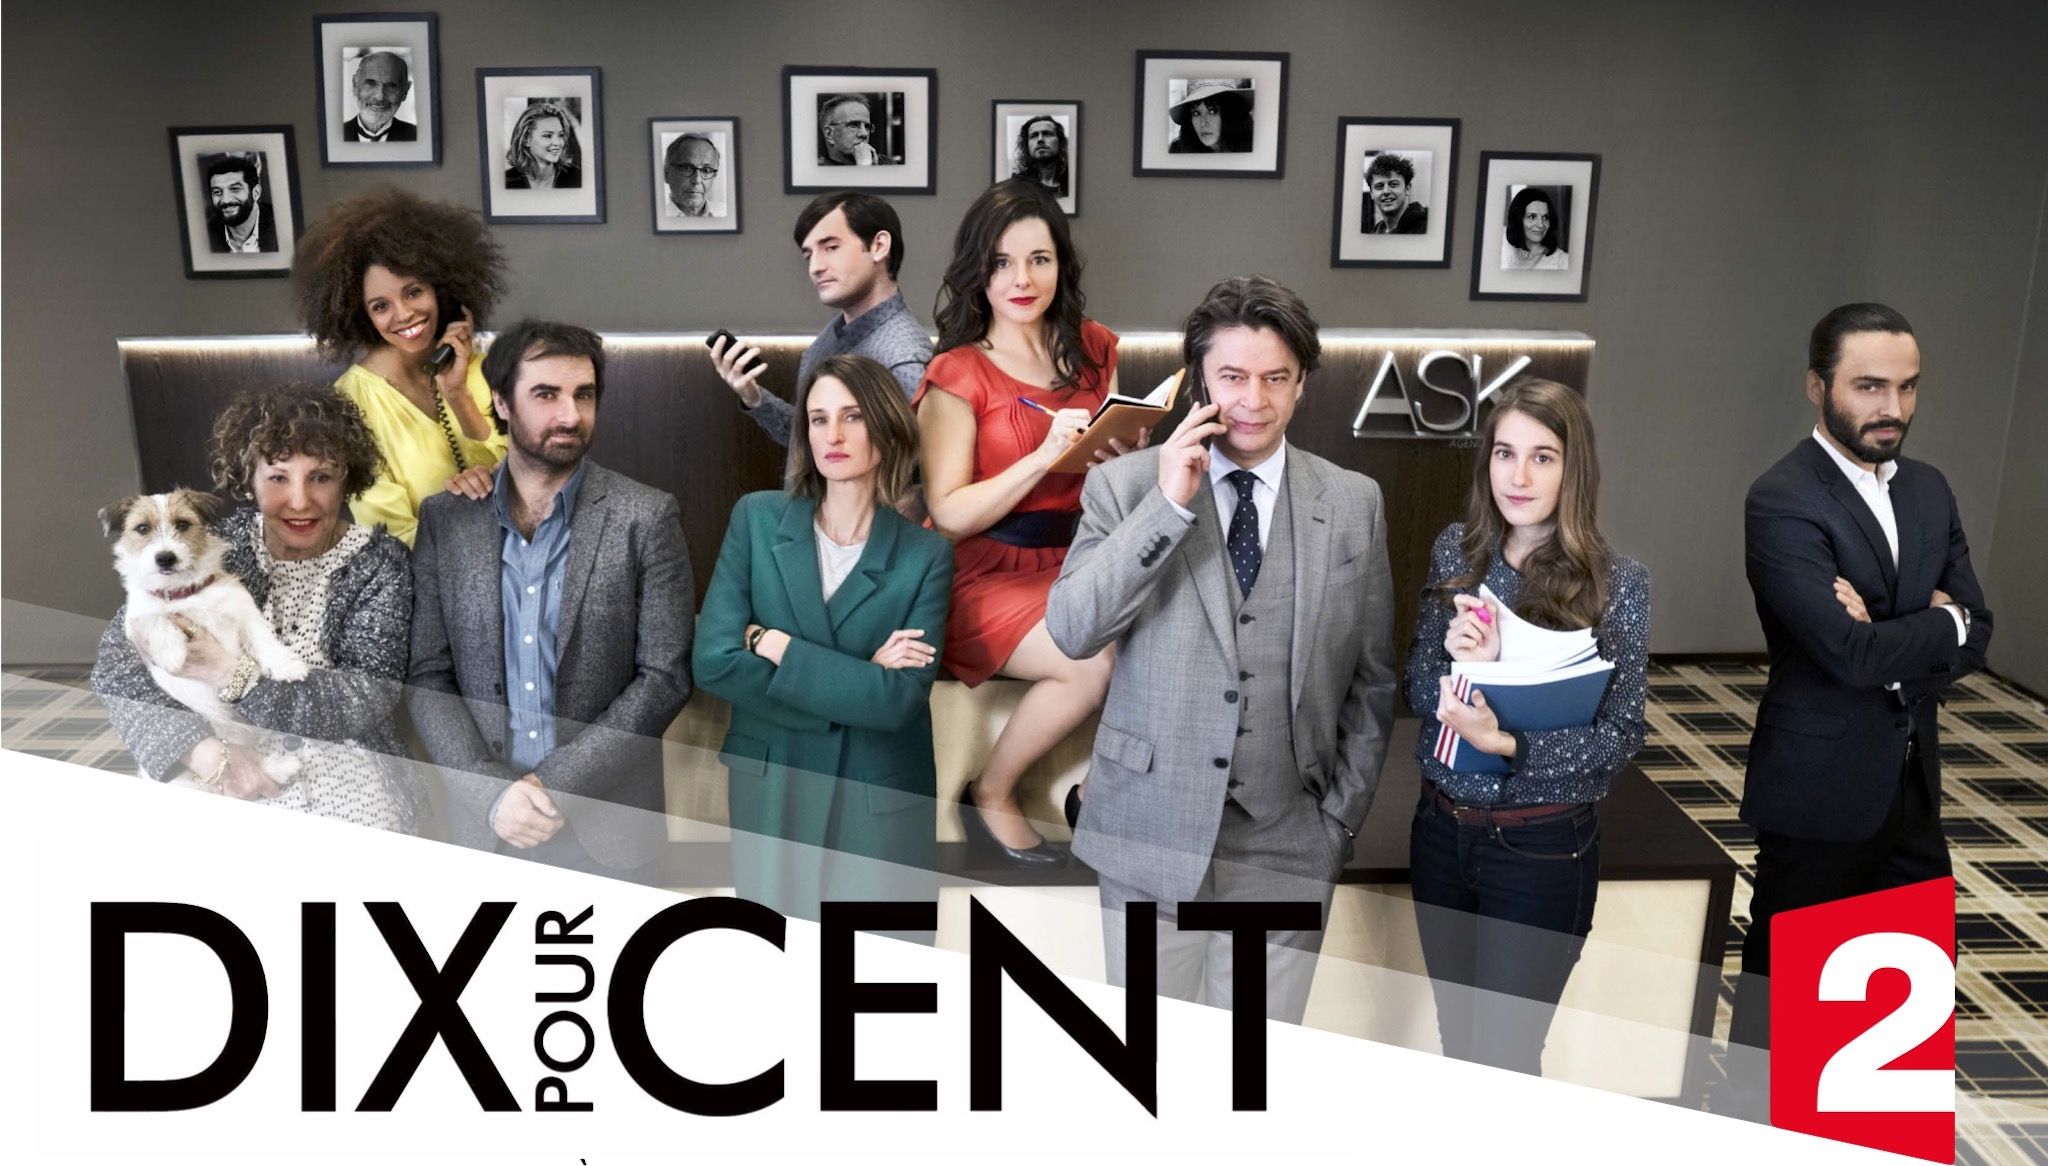 """The cast of French Netflix series Call my agent or """"Dix Pour Cent"""" in French, which is perfect for watching while on lockdown during the Covid-19 lockdown."""